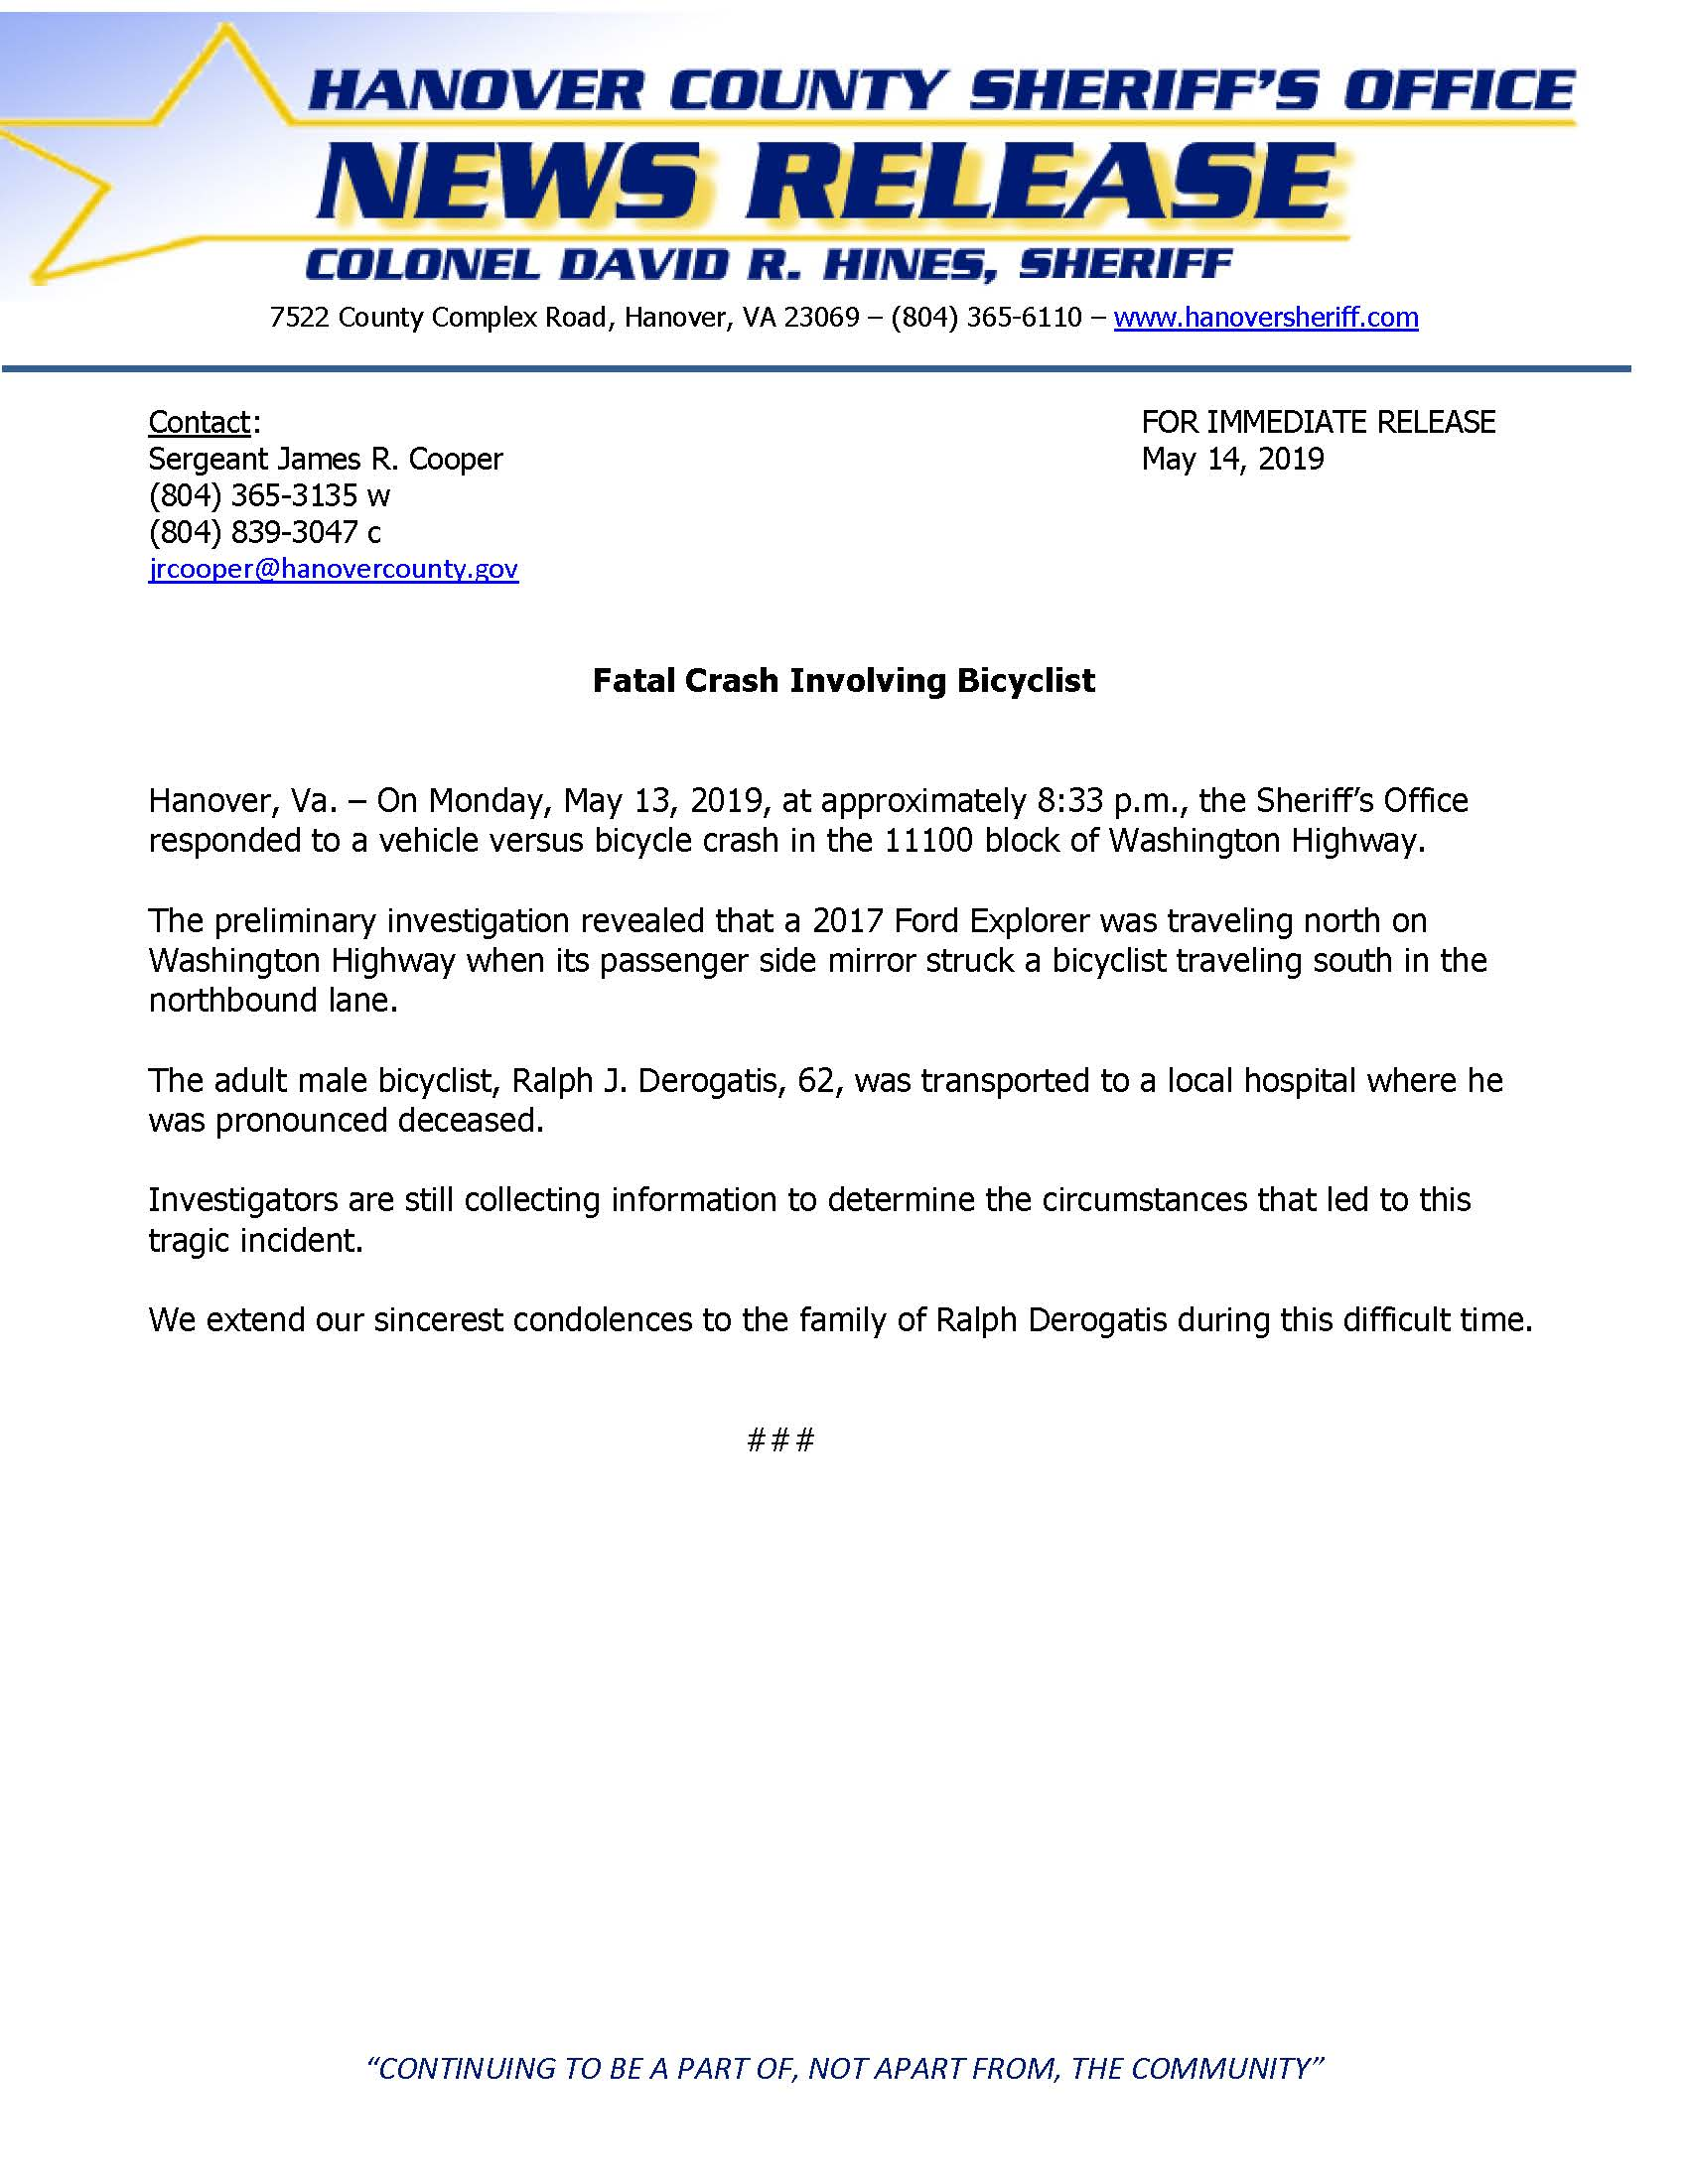 HCSO - Fatal Crash involving Bicyclist- Washington Hwy- May 14, 2019